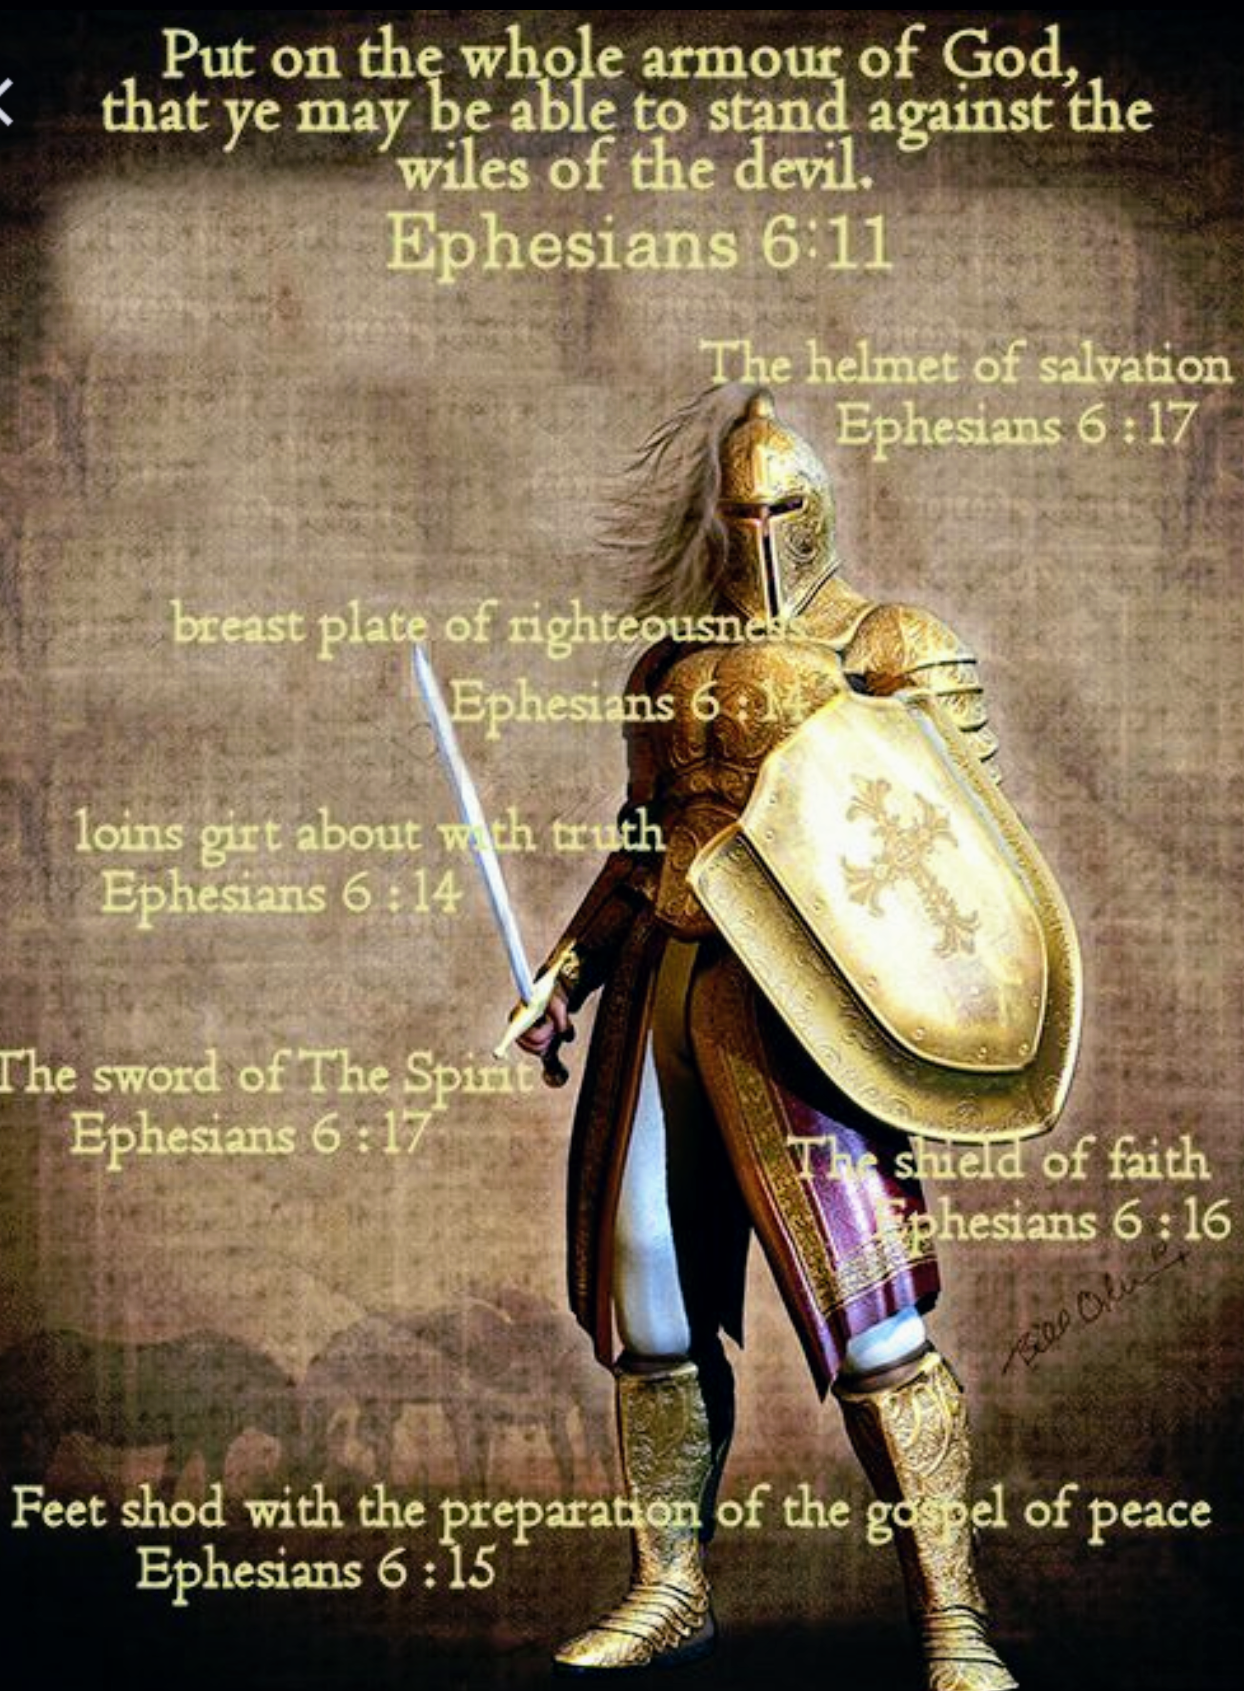 Put on the whole armour of God, that ye may be able to stand against the  wiles of the devil. - Ephesians 6:11